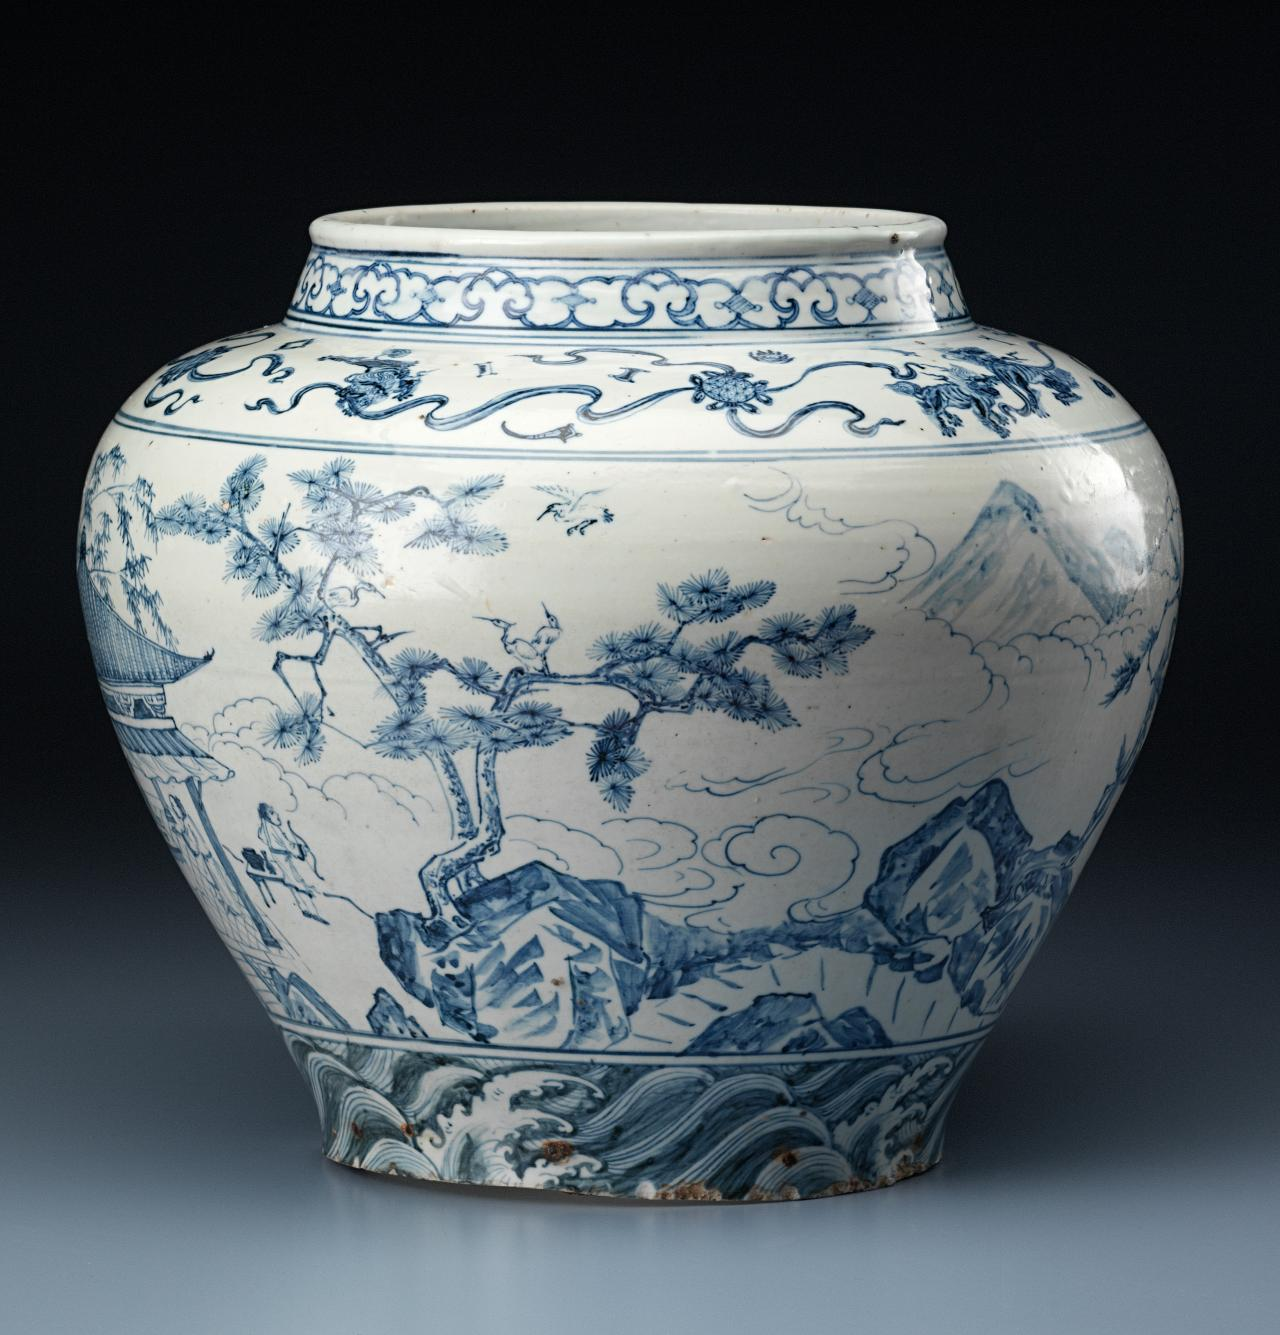 The date of a rare blue-and-white wine jar in the Chinese